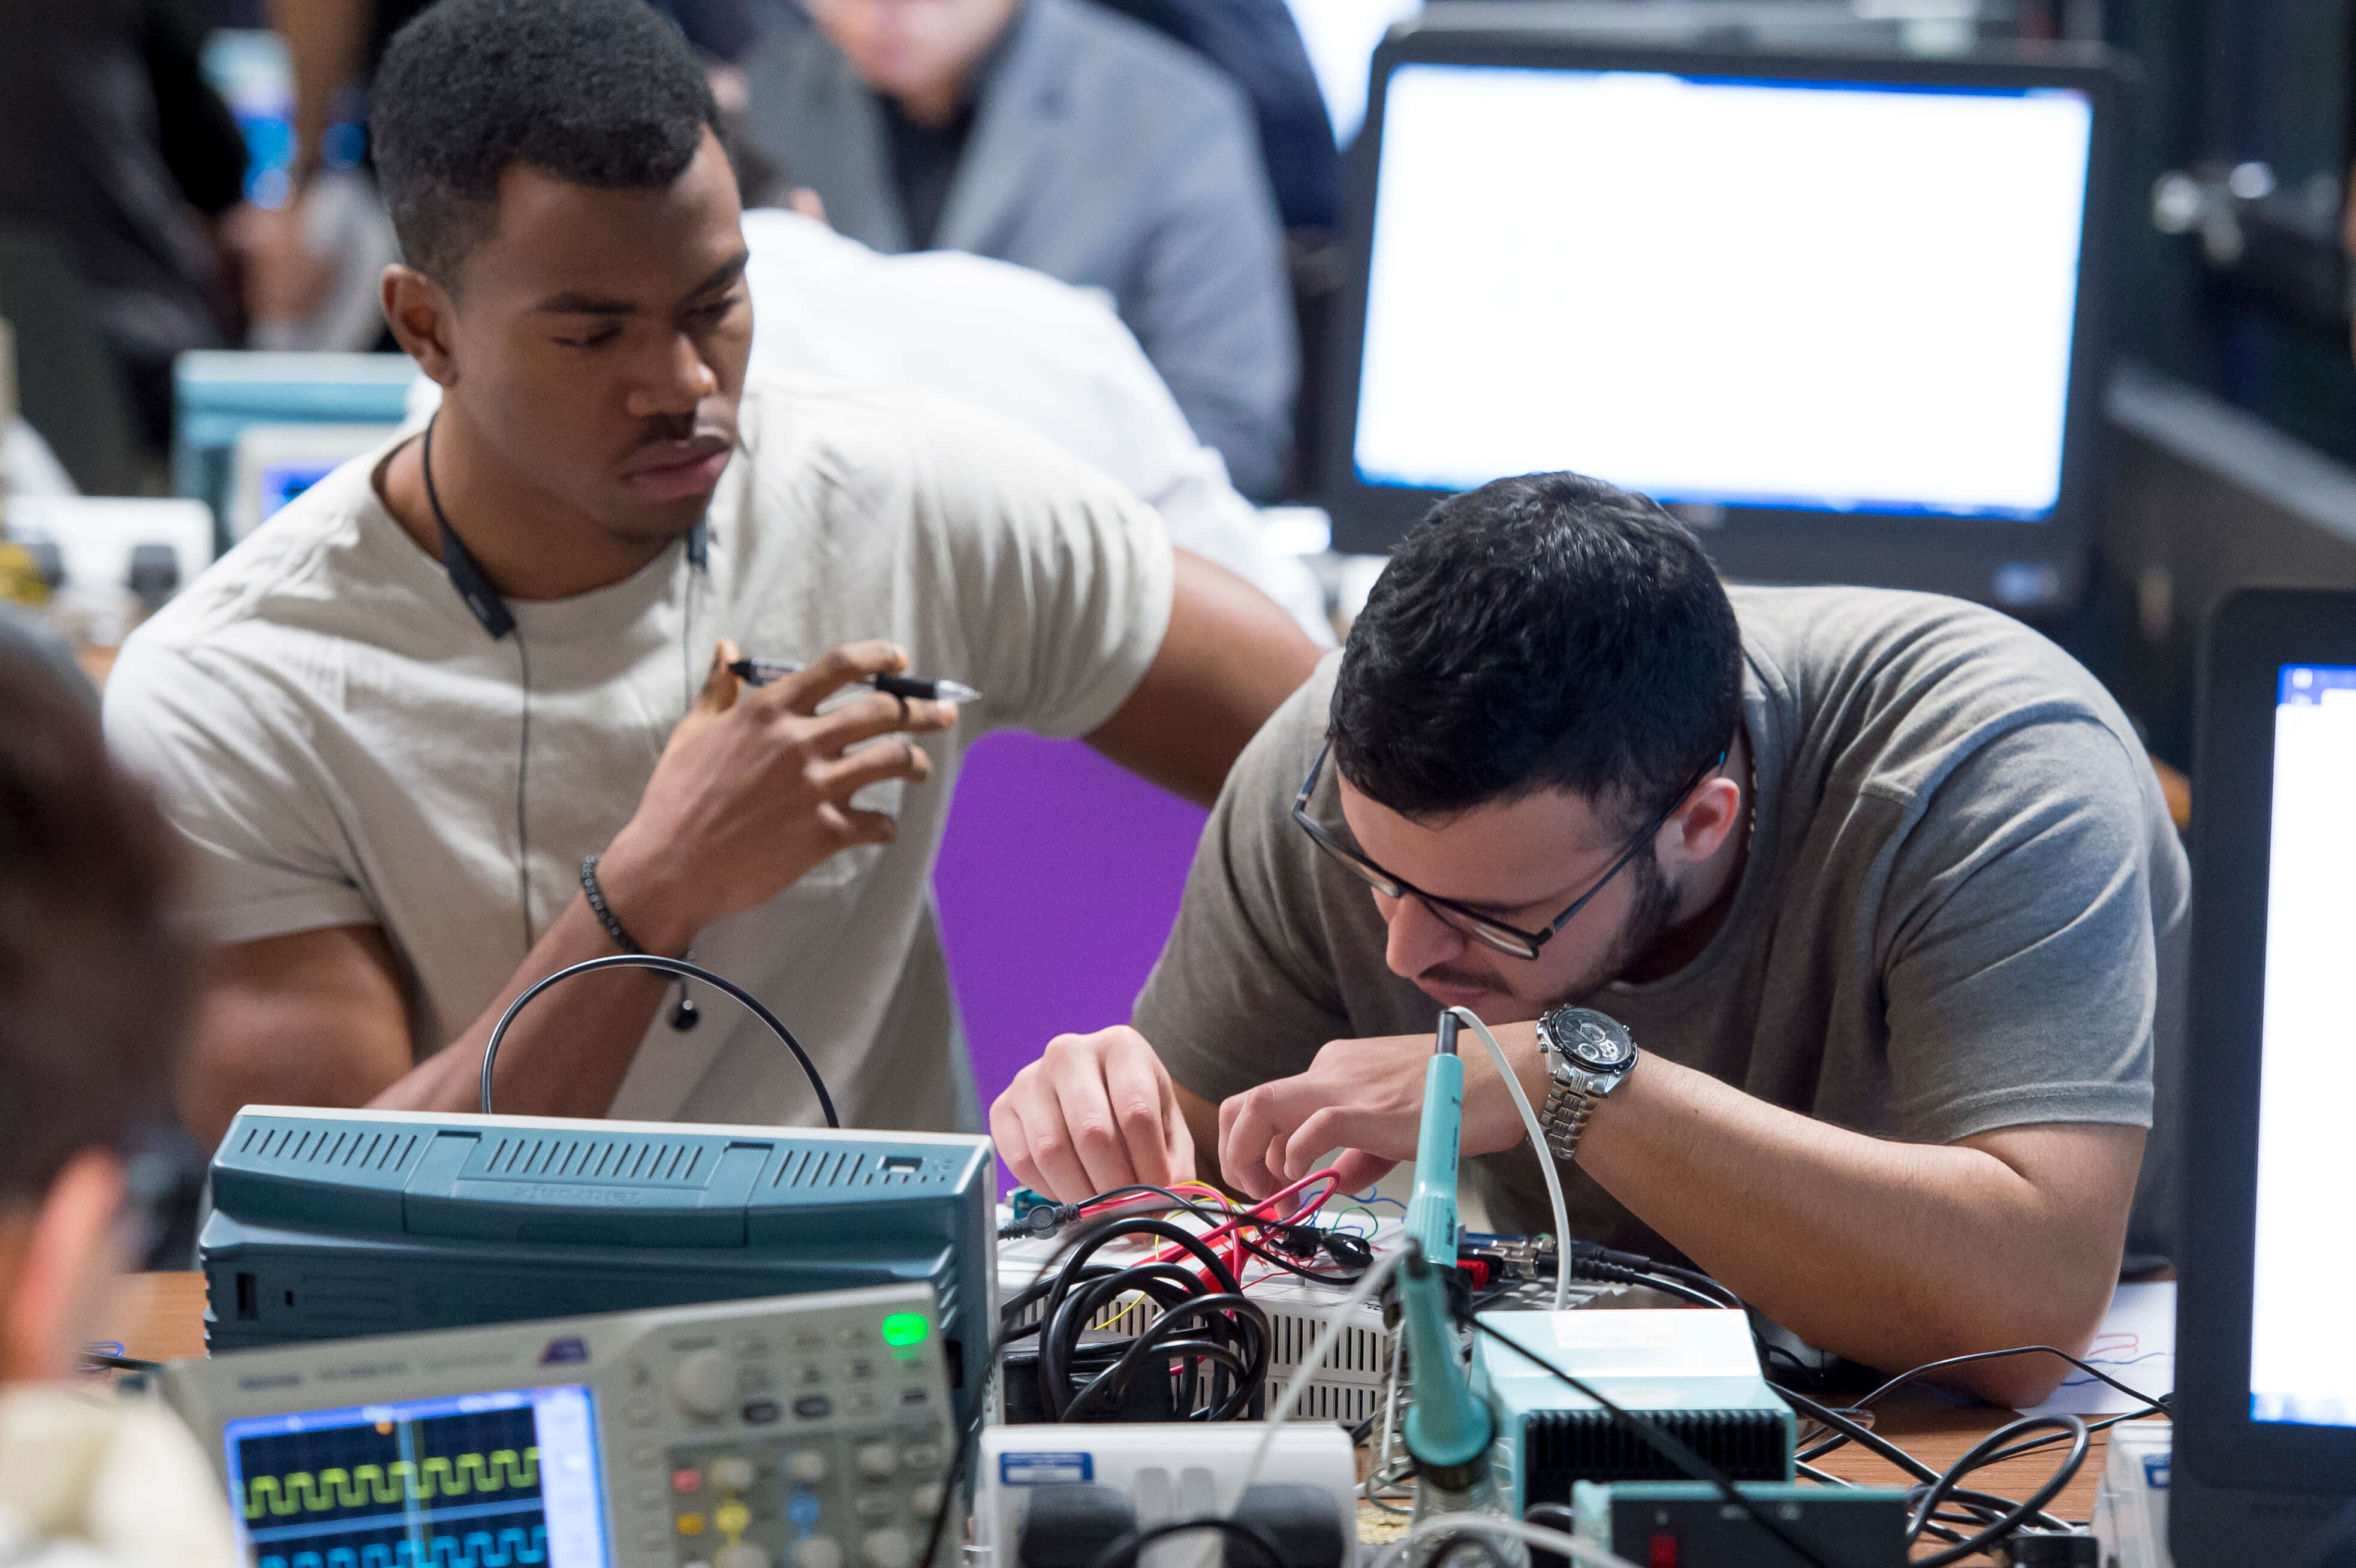 Sussex Electrical and Electronic Engineering: Learn to shape the future of electronics and its applications